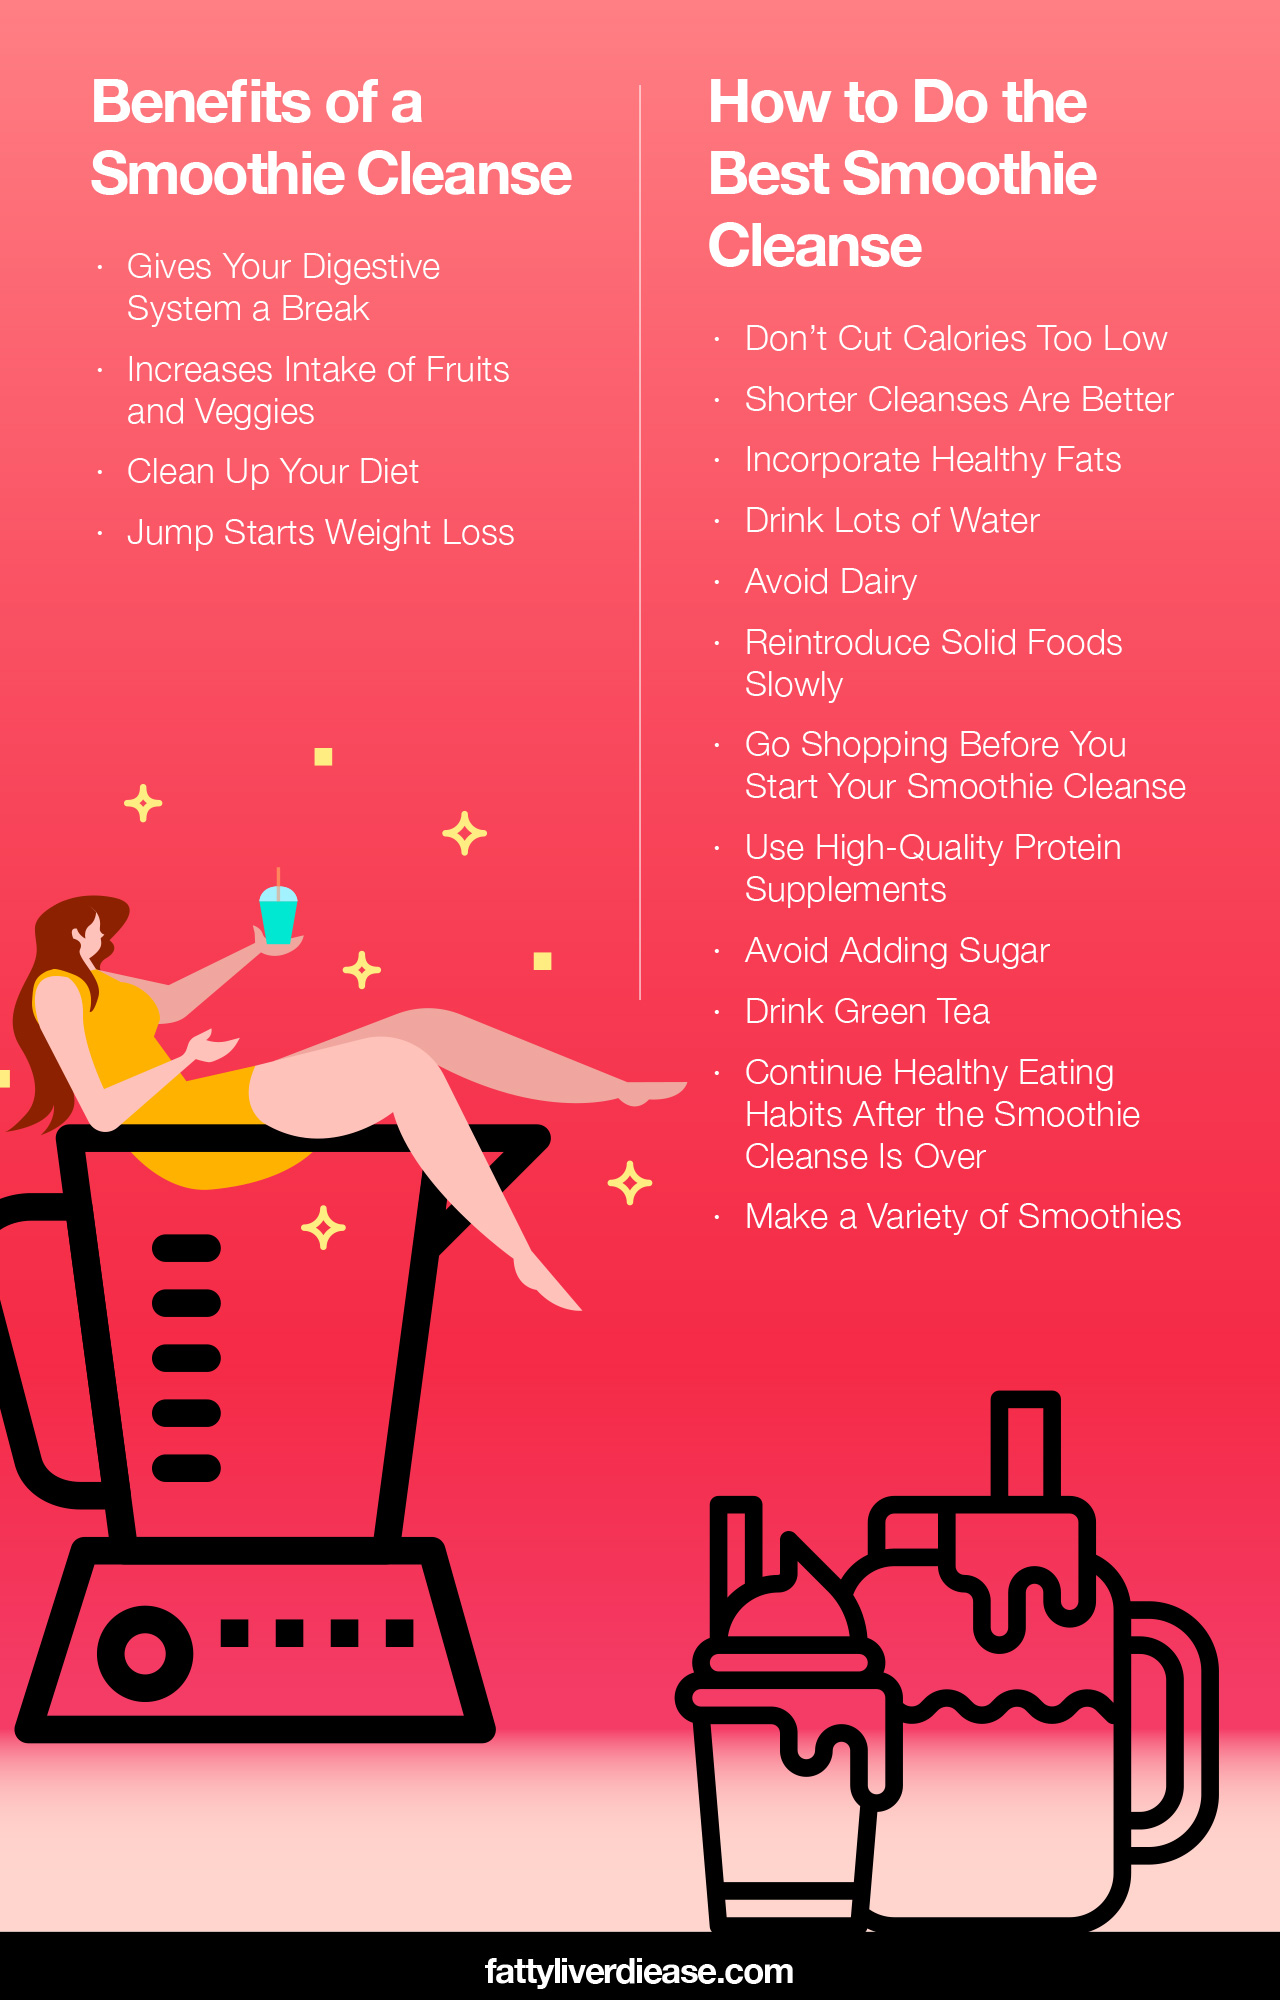 Benefits of a Smoothie Cleanse